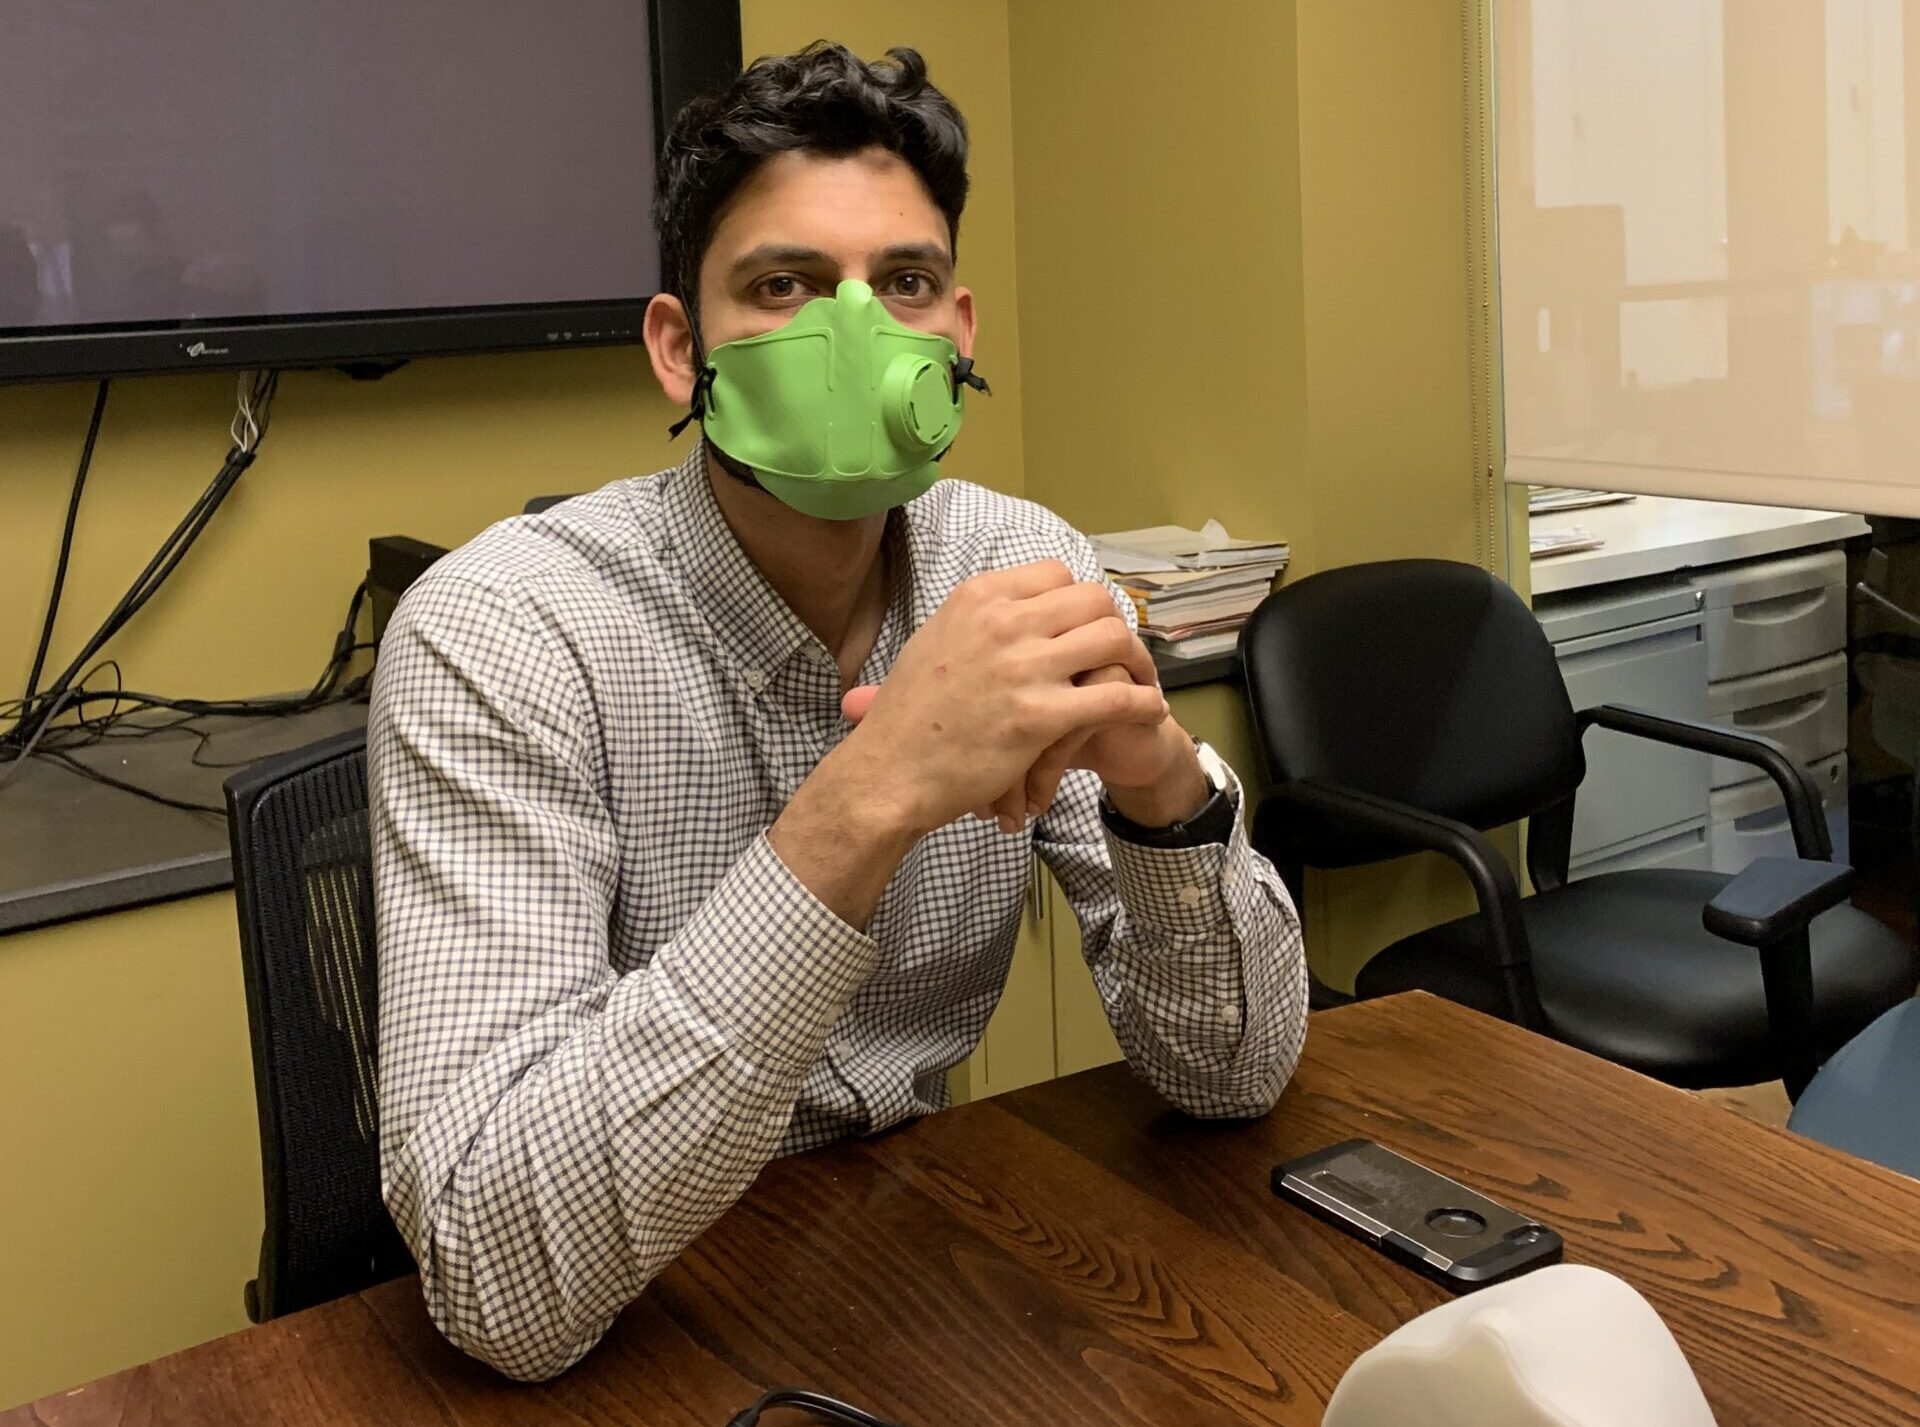 COVID-19 Response: 3D-Printing Masks to Help Homeless New Yorkers